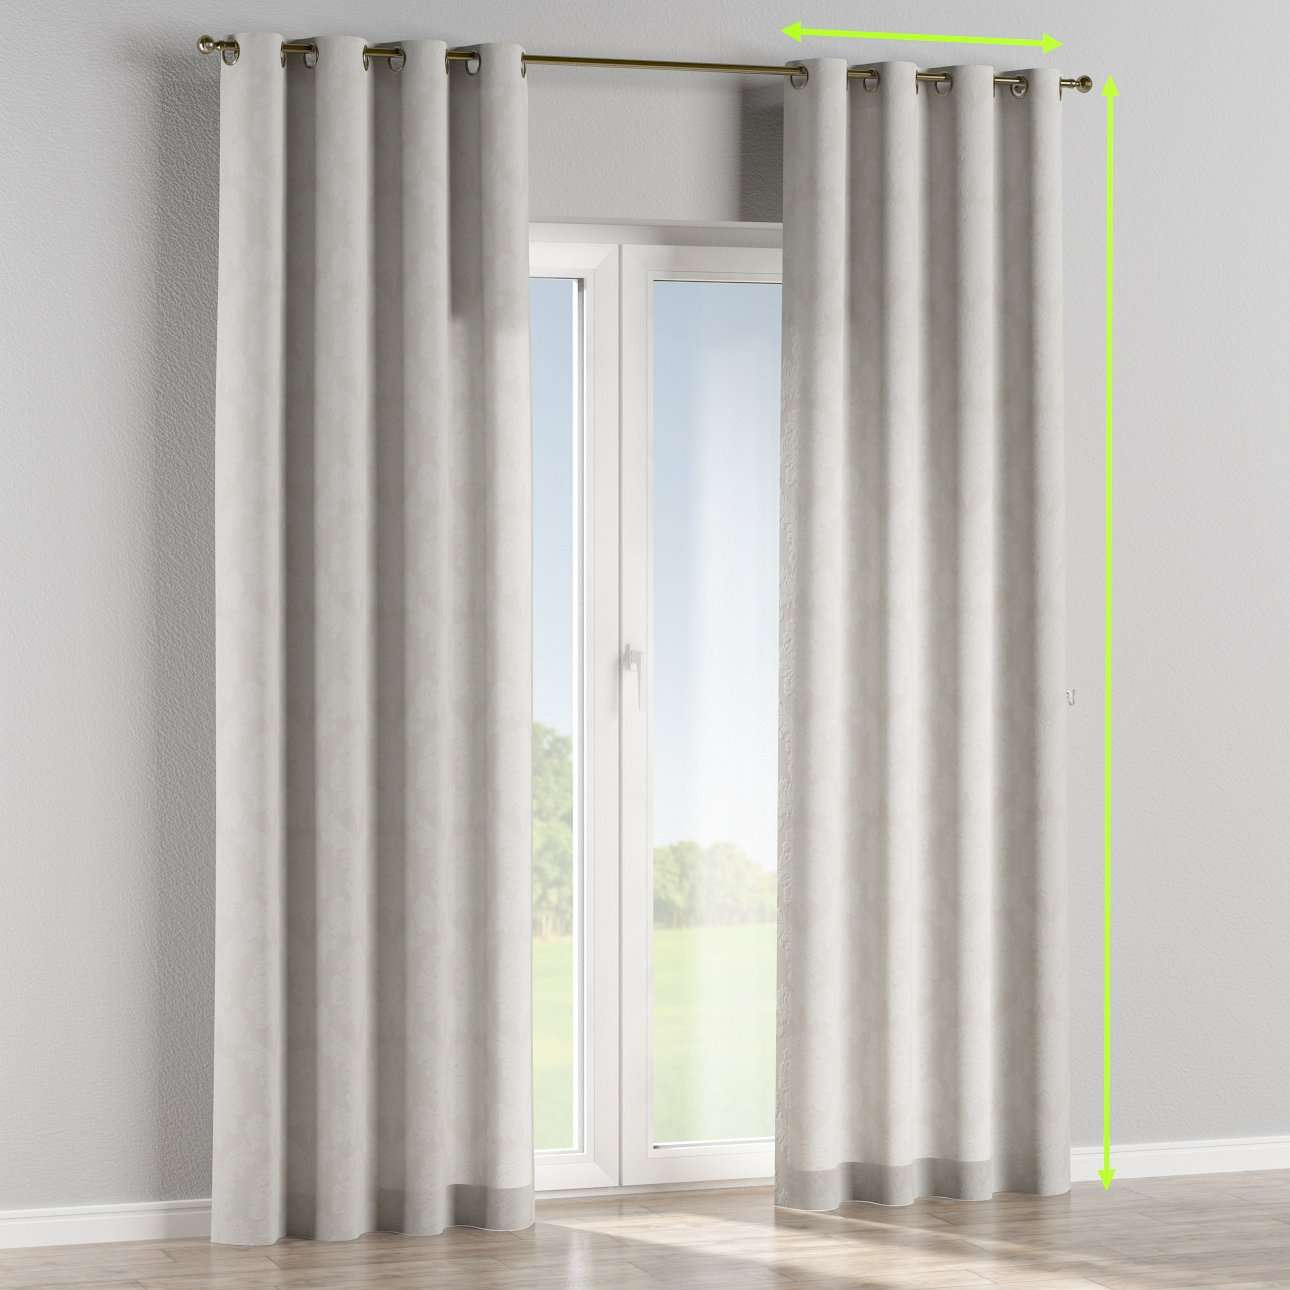 Eyelet curtain in collection Damasco, fabric: 613-81